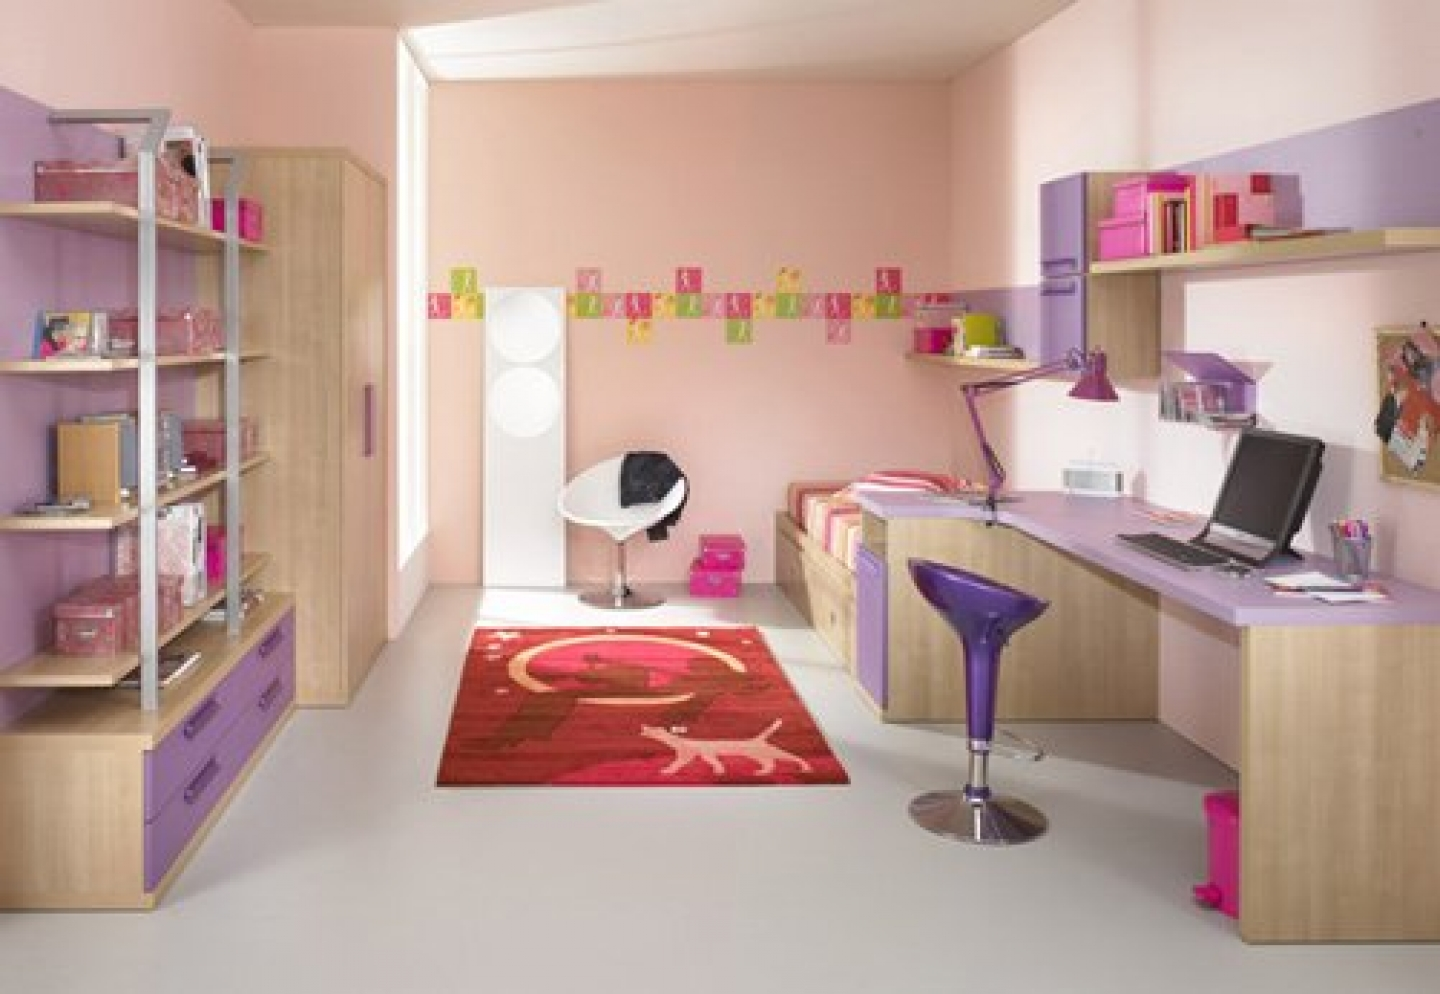 10 year old bedroom ideas charming 10 year old girl bedroom ideas 11 charming 10 year